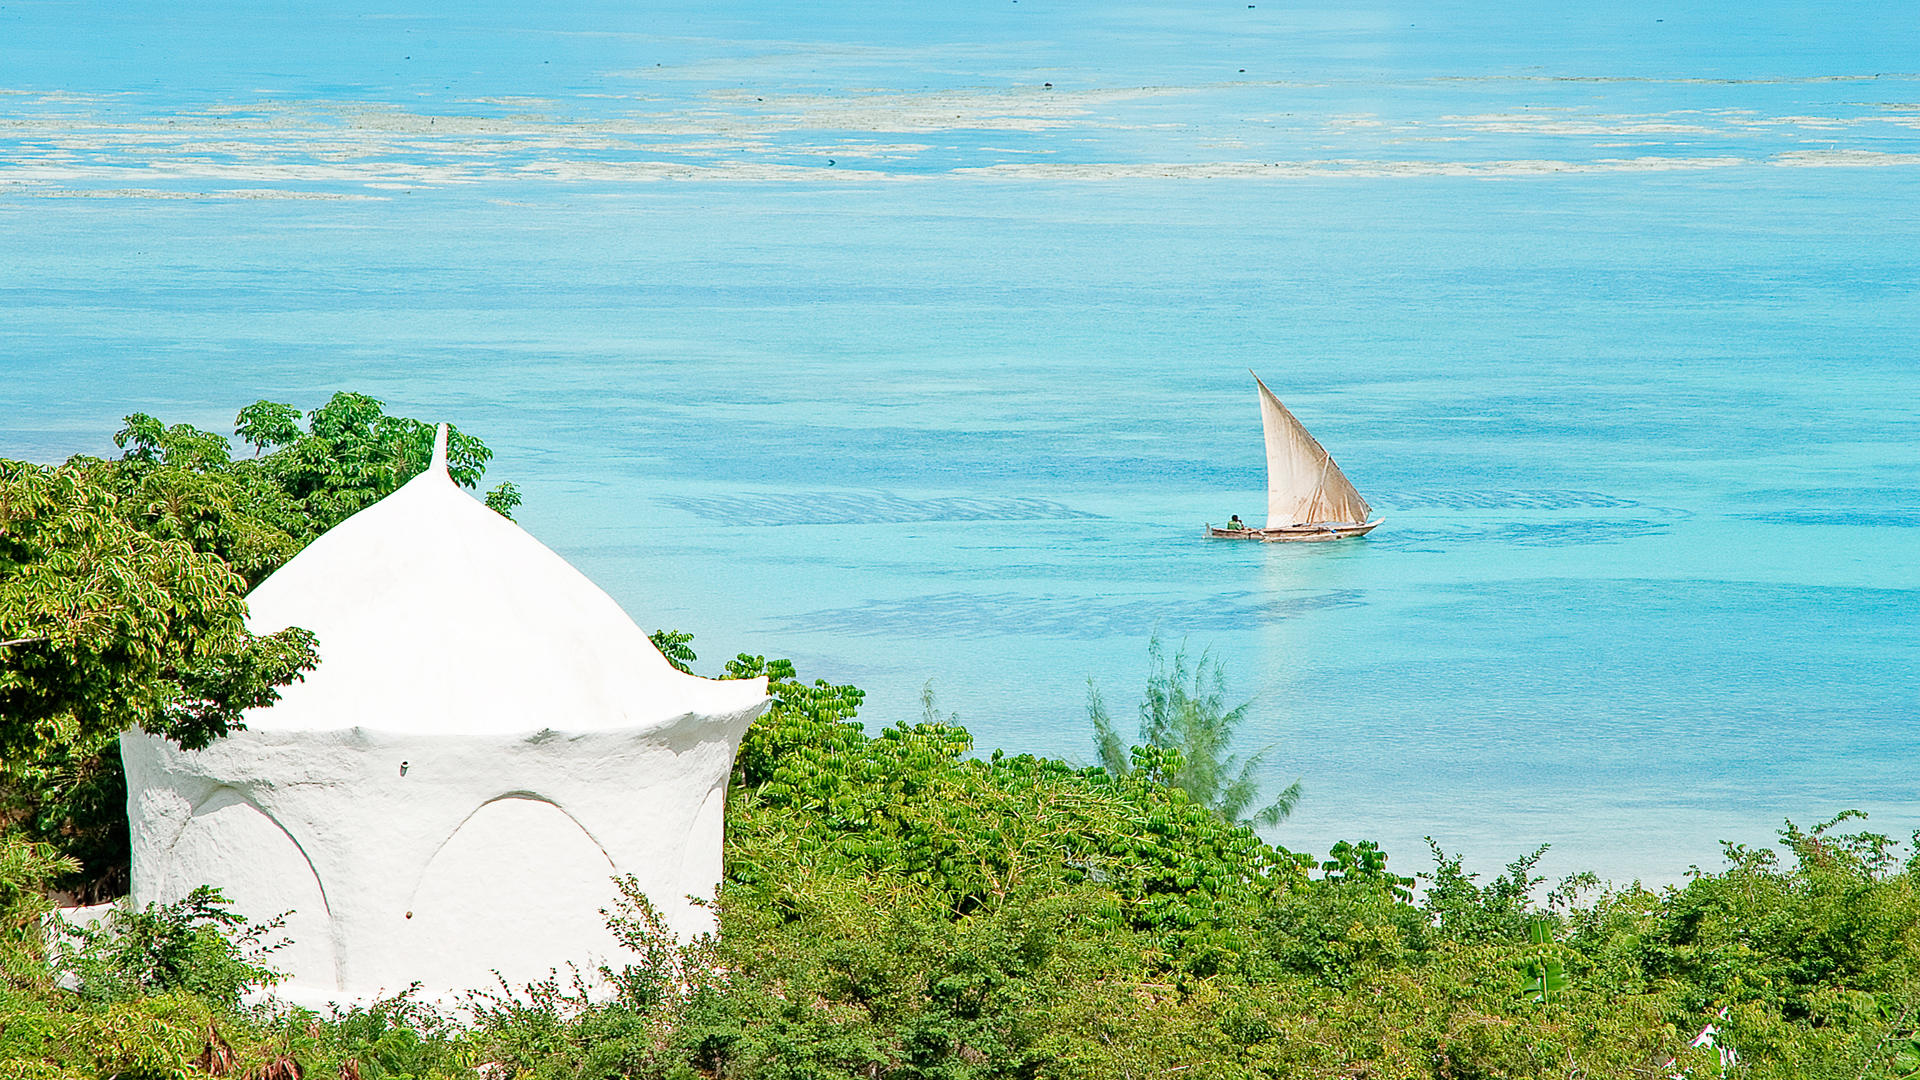 Kilindi-Zanzibar---View-to-the-ocean-1